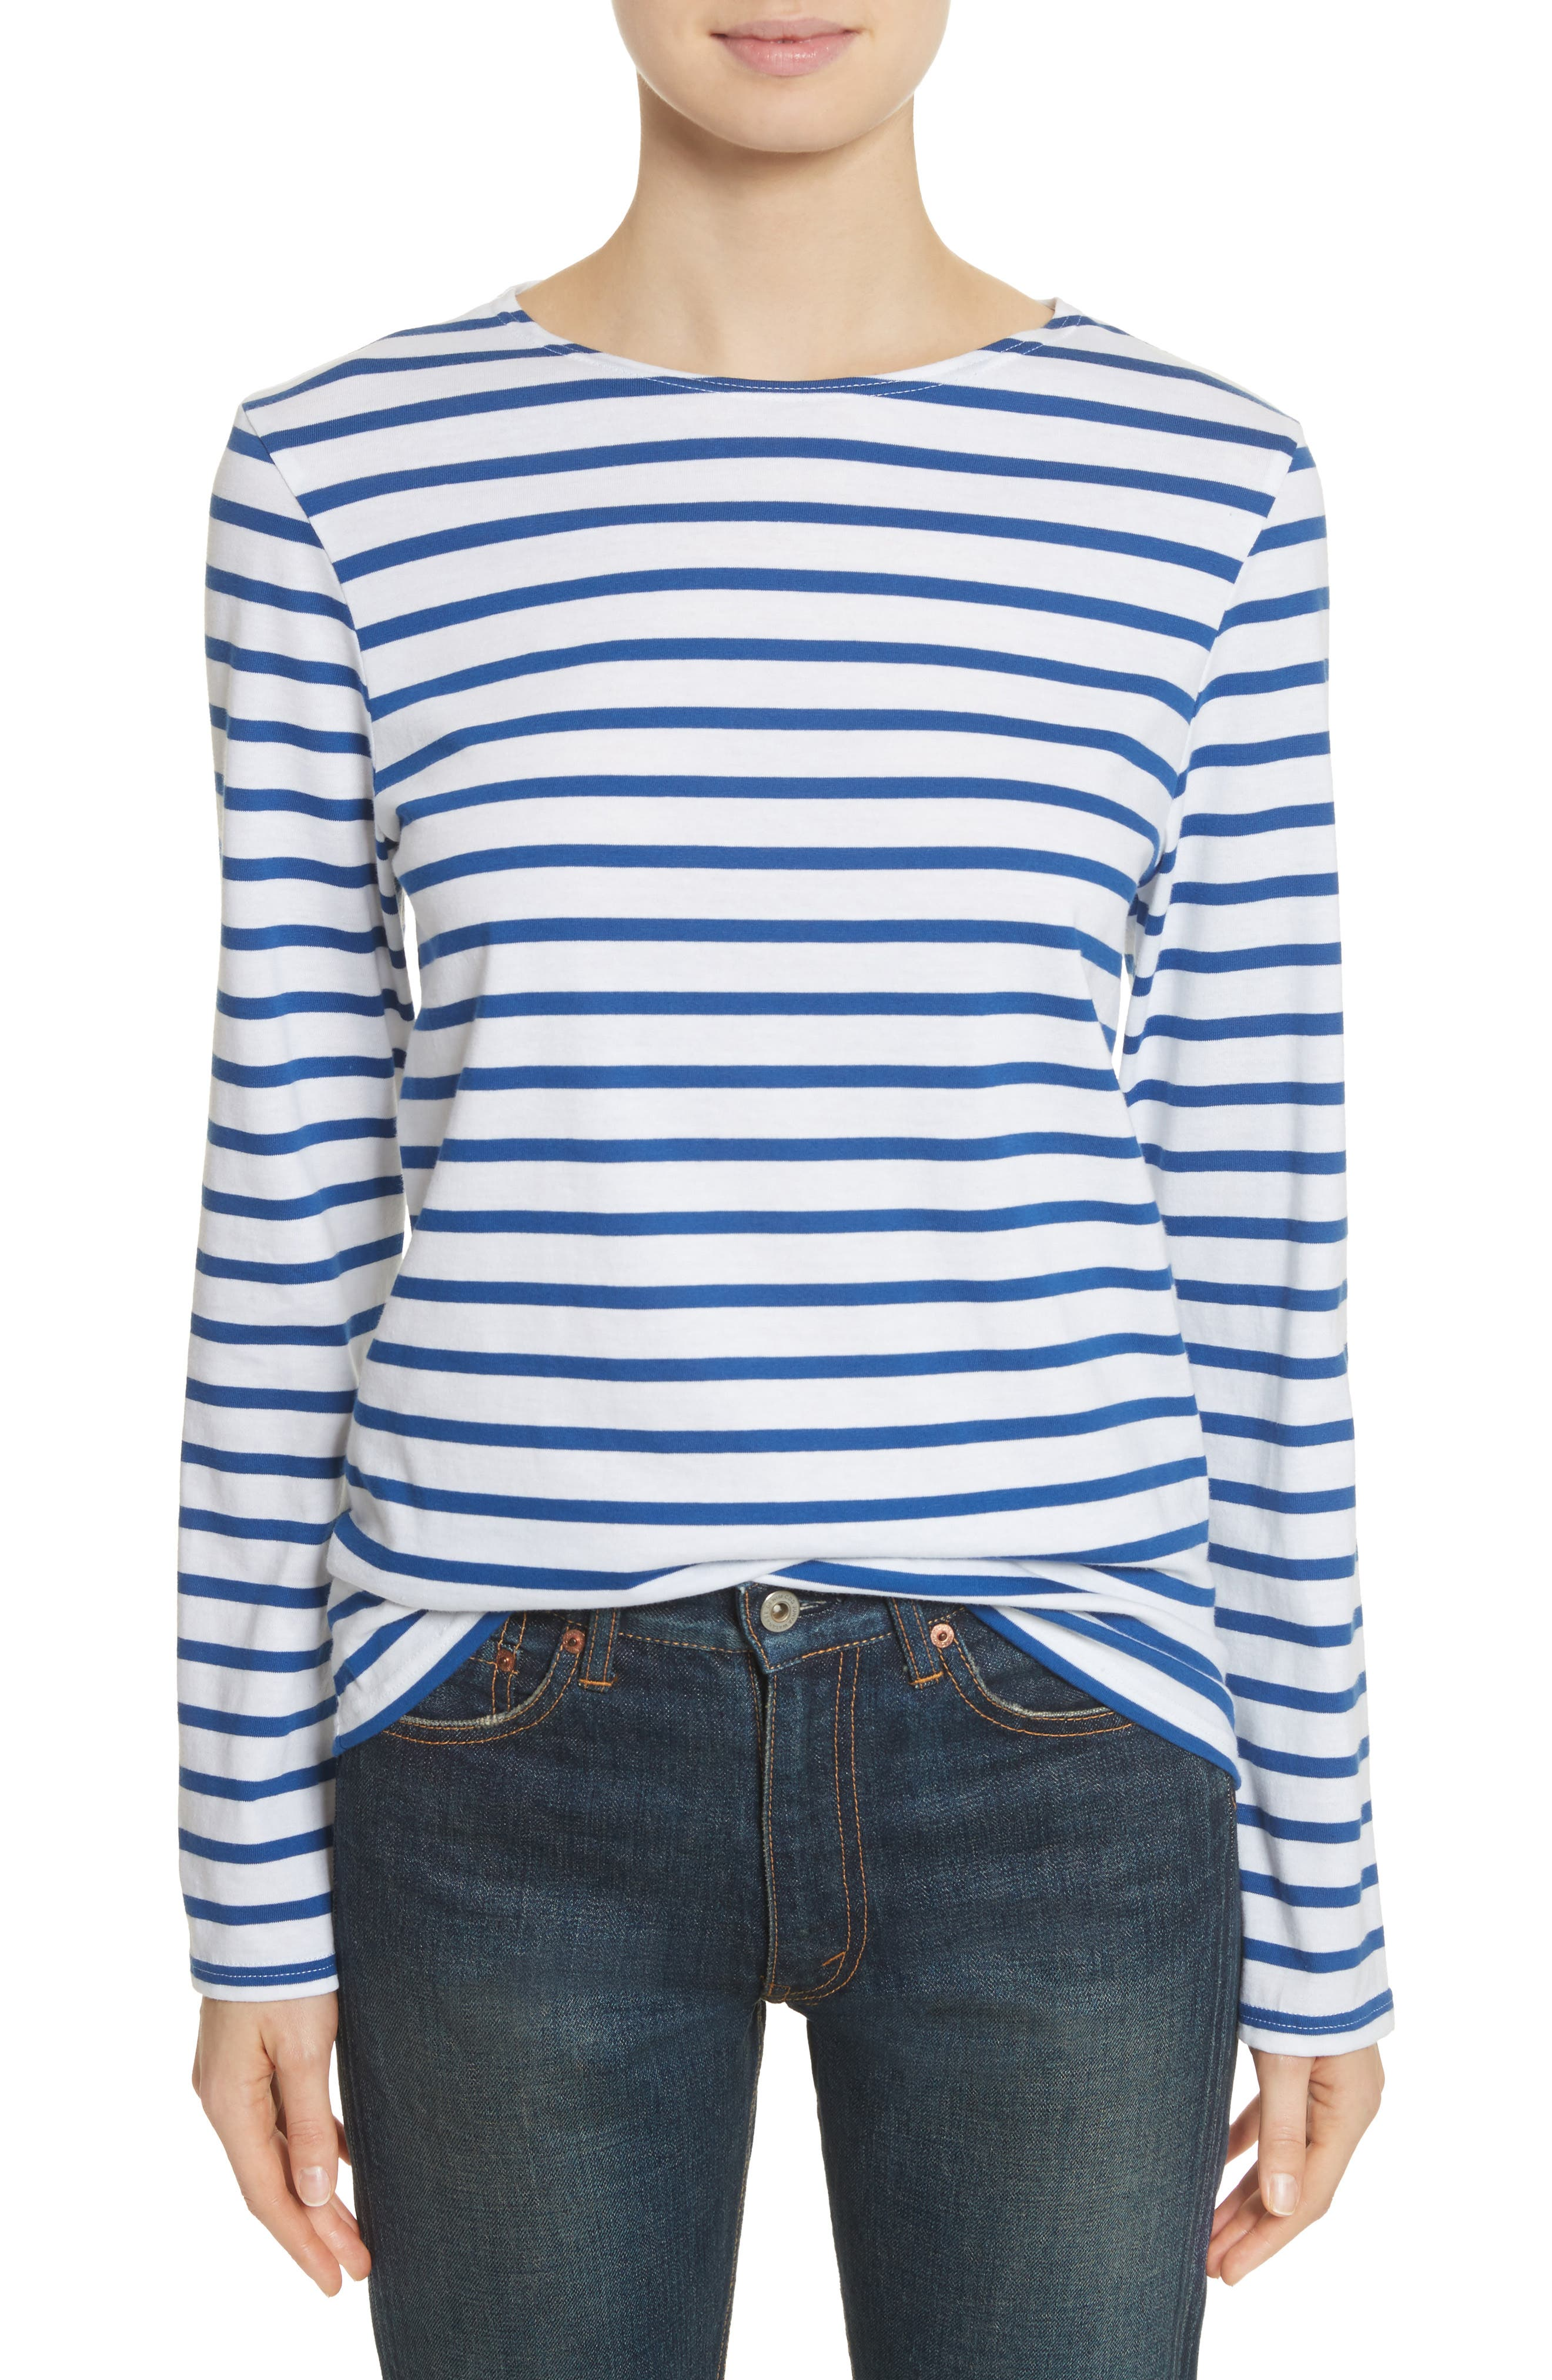 91a009c5 Women's Long Sleeve Tops | Nordstrom